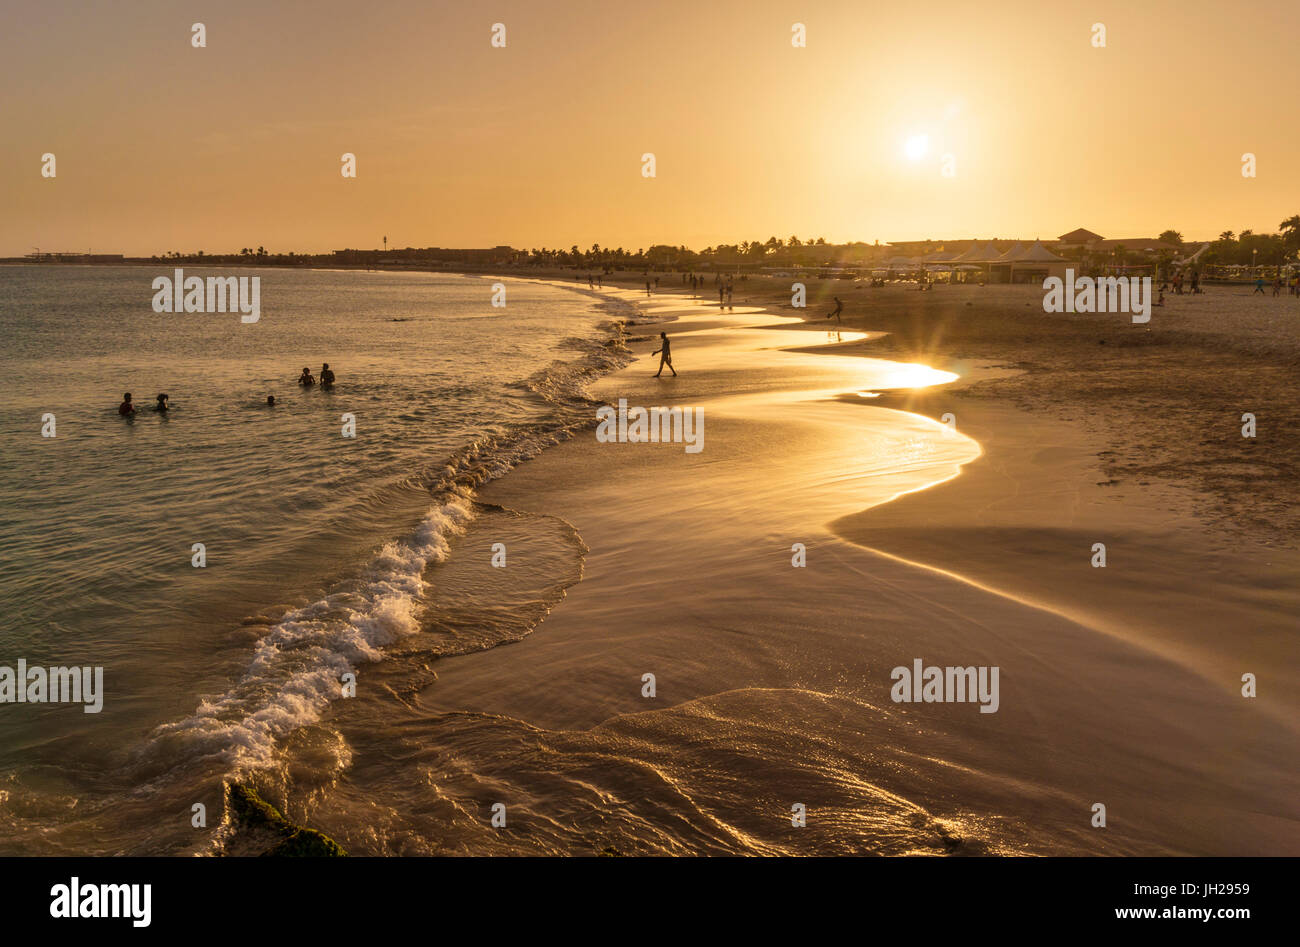 Sunset at the beach in Santa Maria, Praia de Santa Maria, Baia de Santa Maria, Sal Island, Cape Verde, Atlantic, - Stock Image